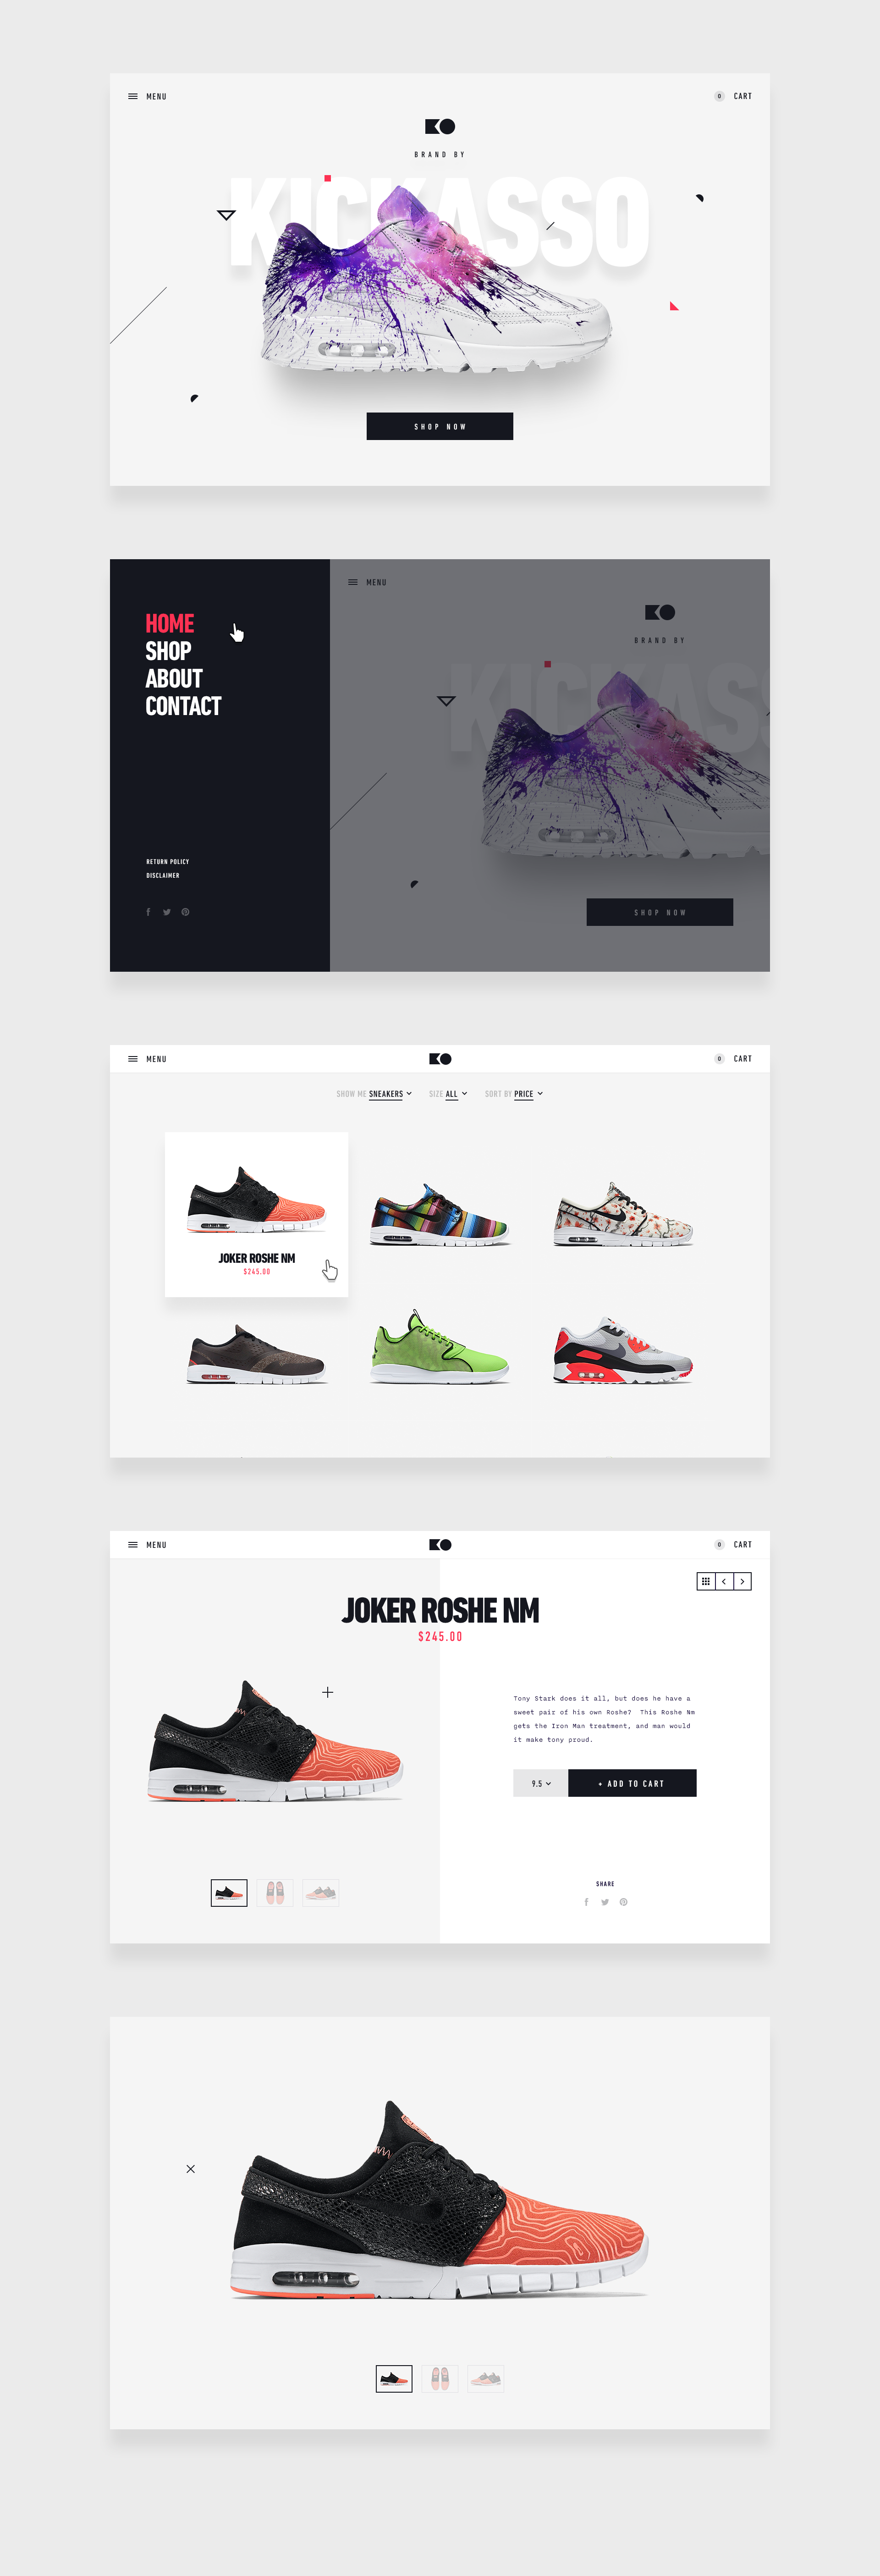 Moaaar comps of this sweet ecommerce baby.  Follow our @STRV team profile for more!